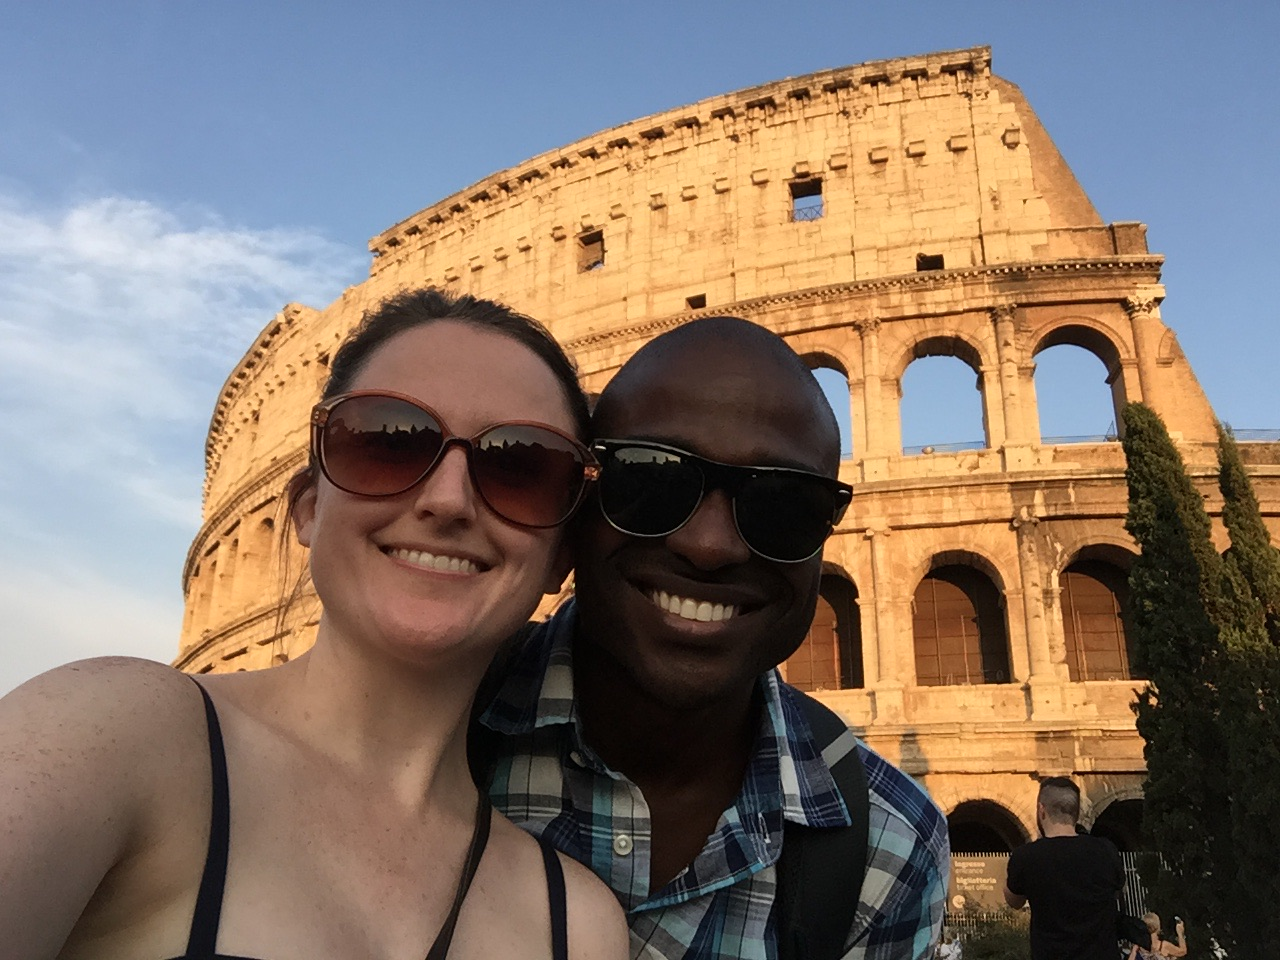 On vacation in Rome